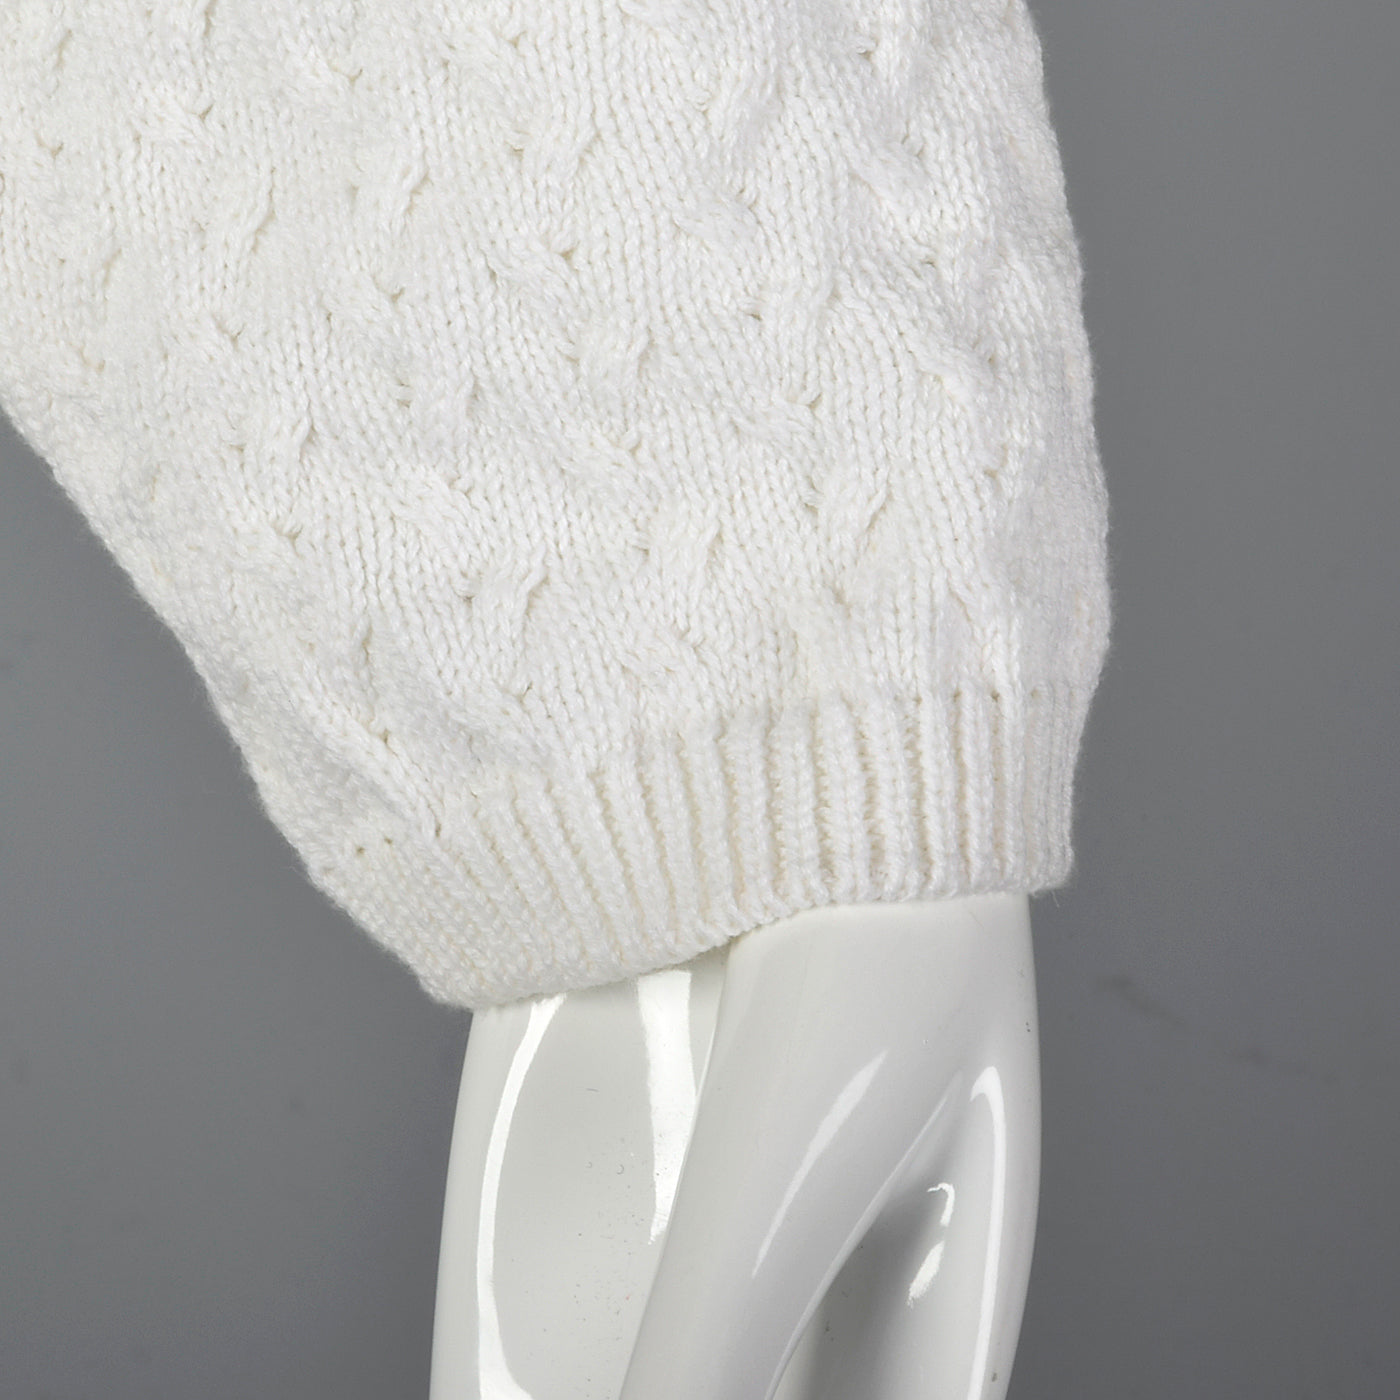 1980s Deadstock White Cable Knit Sweater